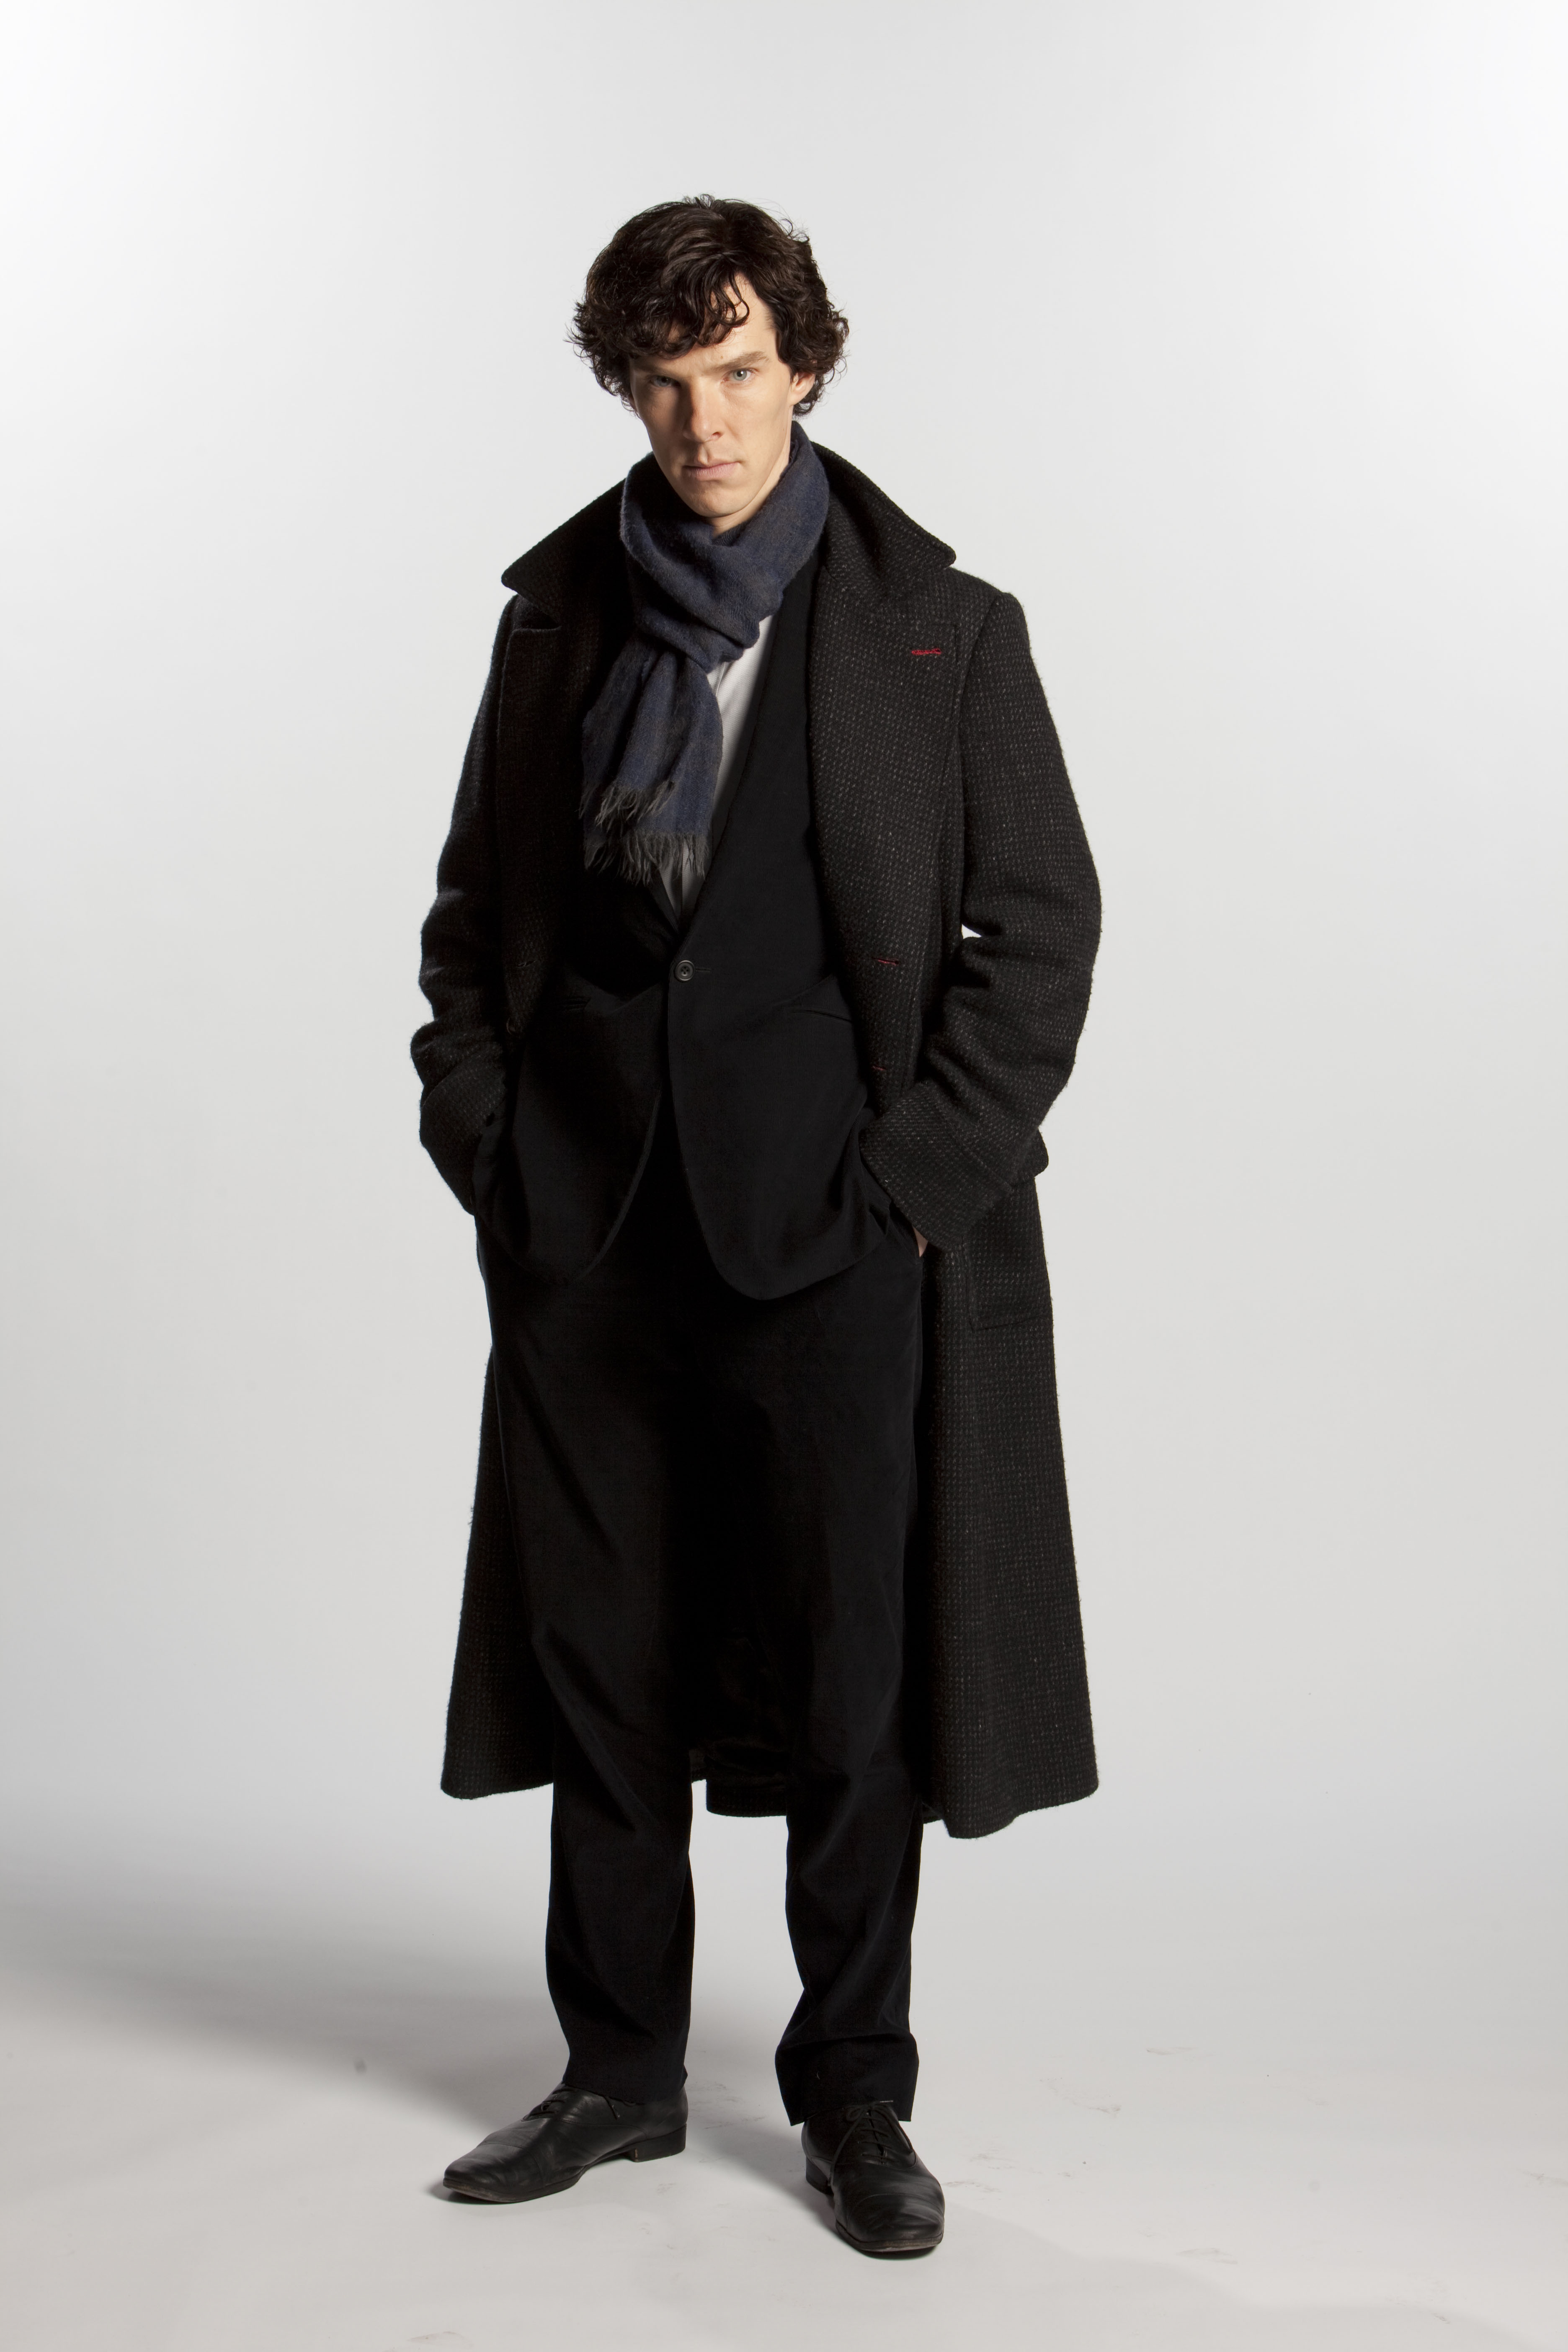 Cumberbatch in his now-iconic coat. (BBC)